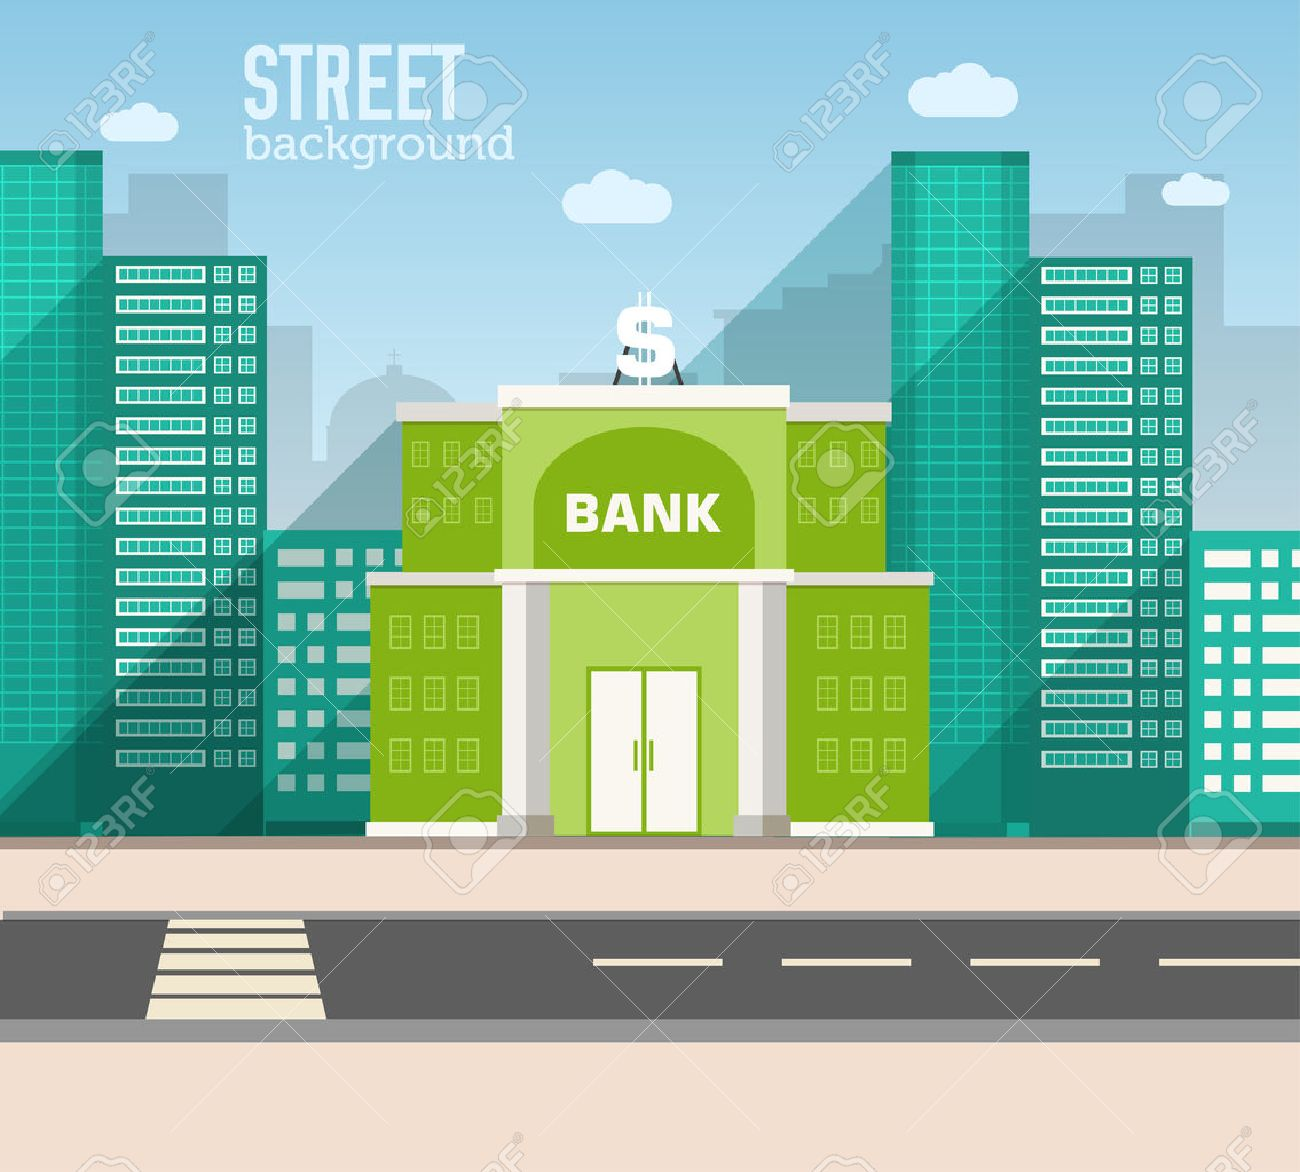 bank building in city space with road on flat style background c - 34296973